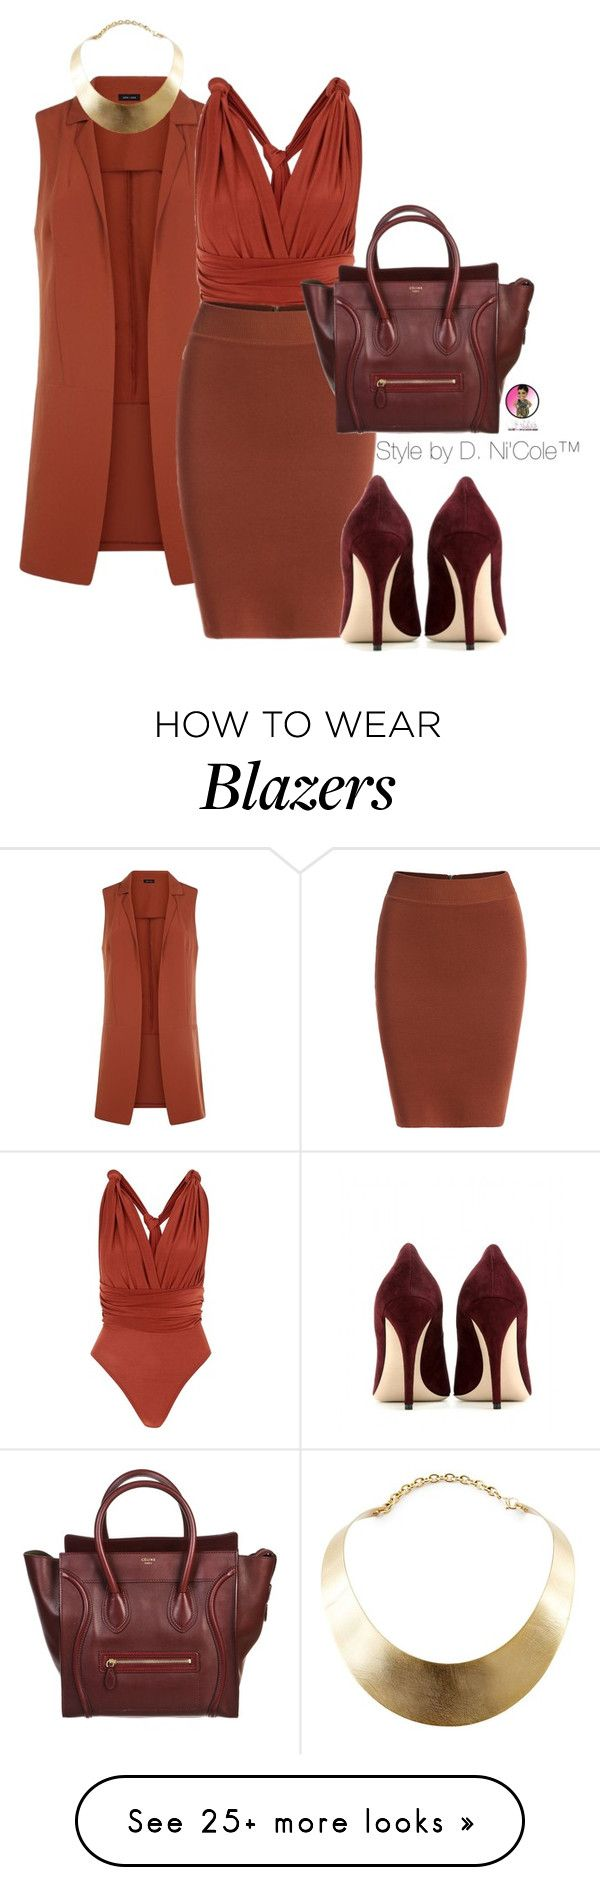 """Untitled #2850"" by stylebydnicole on Polyvore featuring CÉLINE, Miu Miu and GUESS"